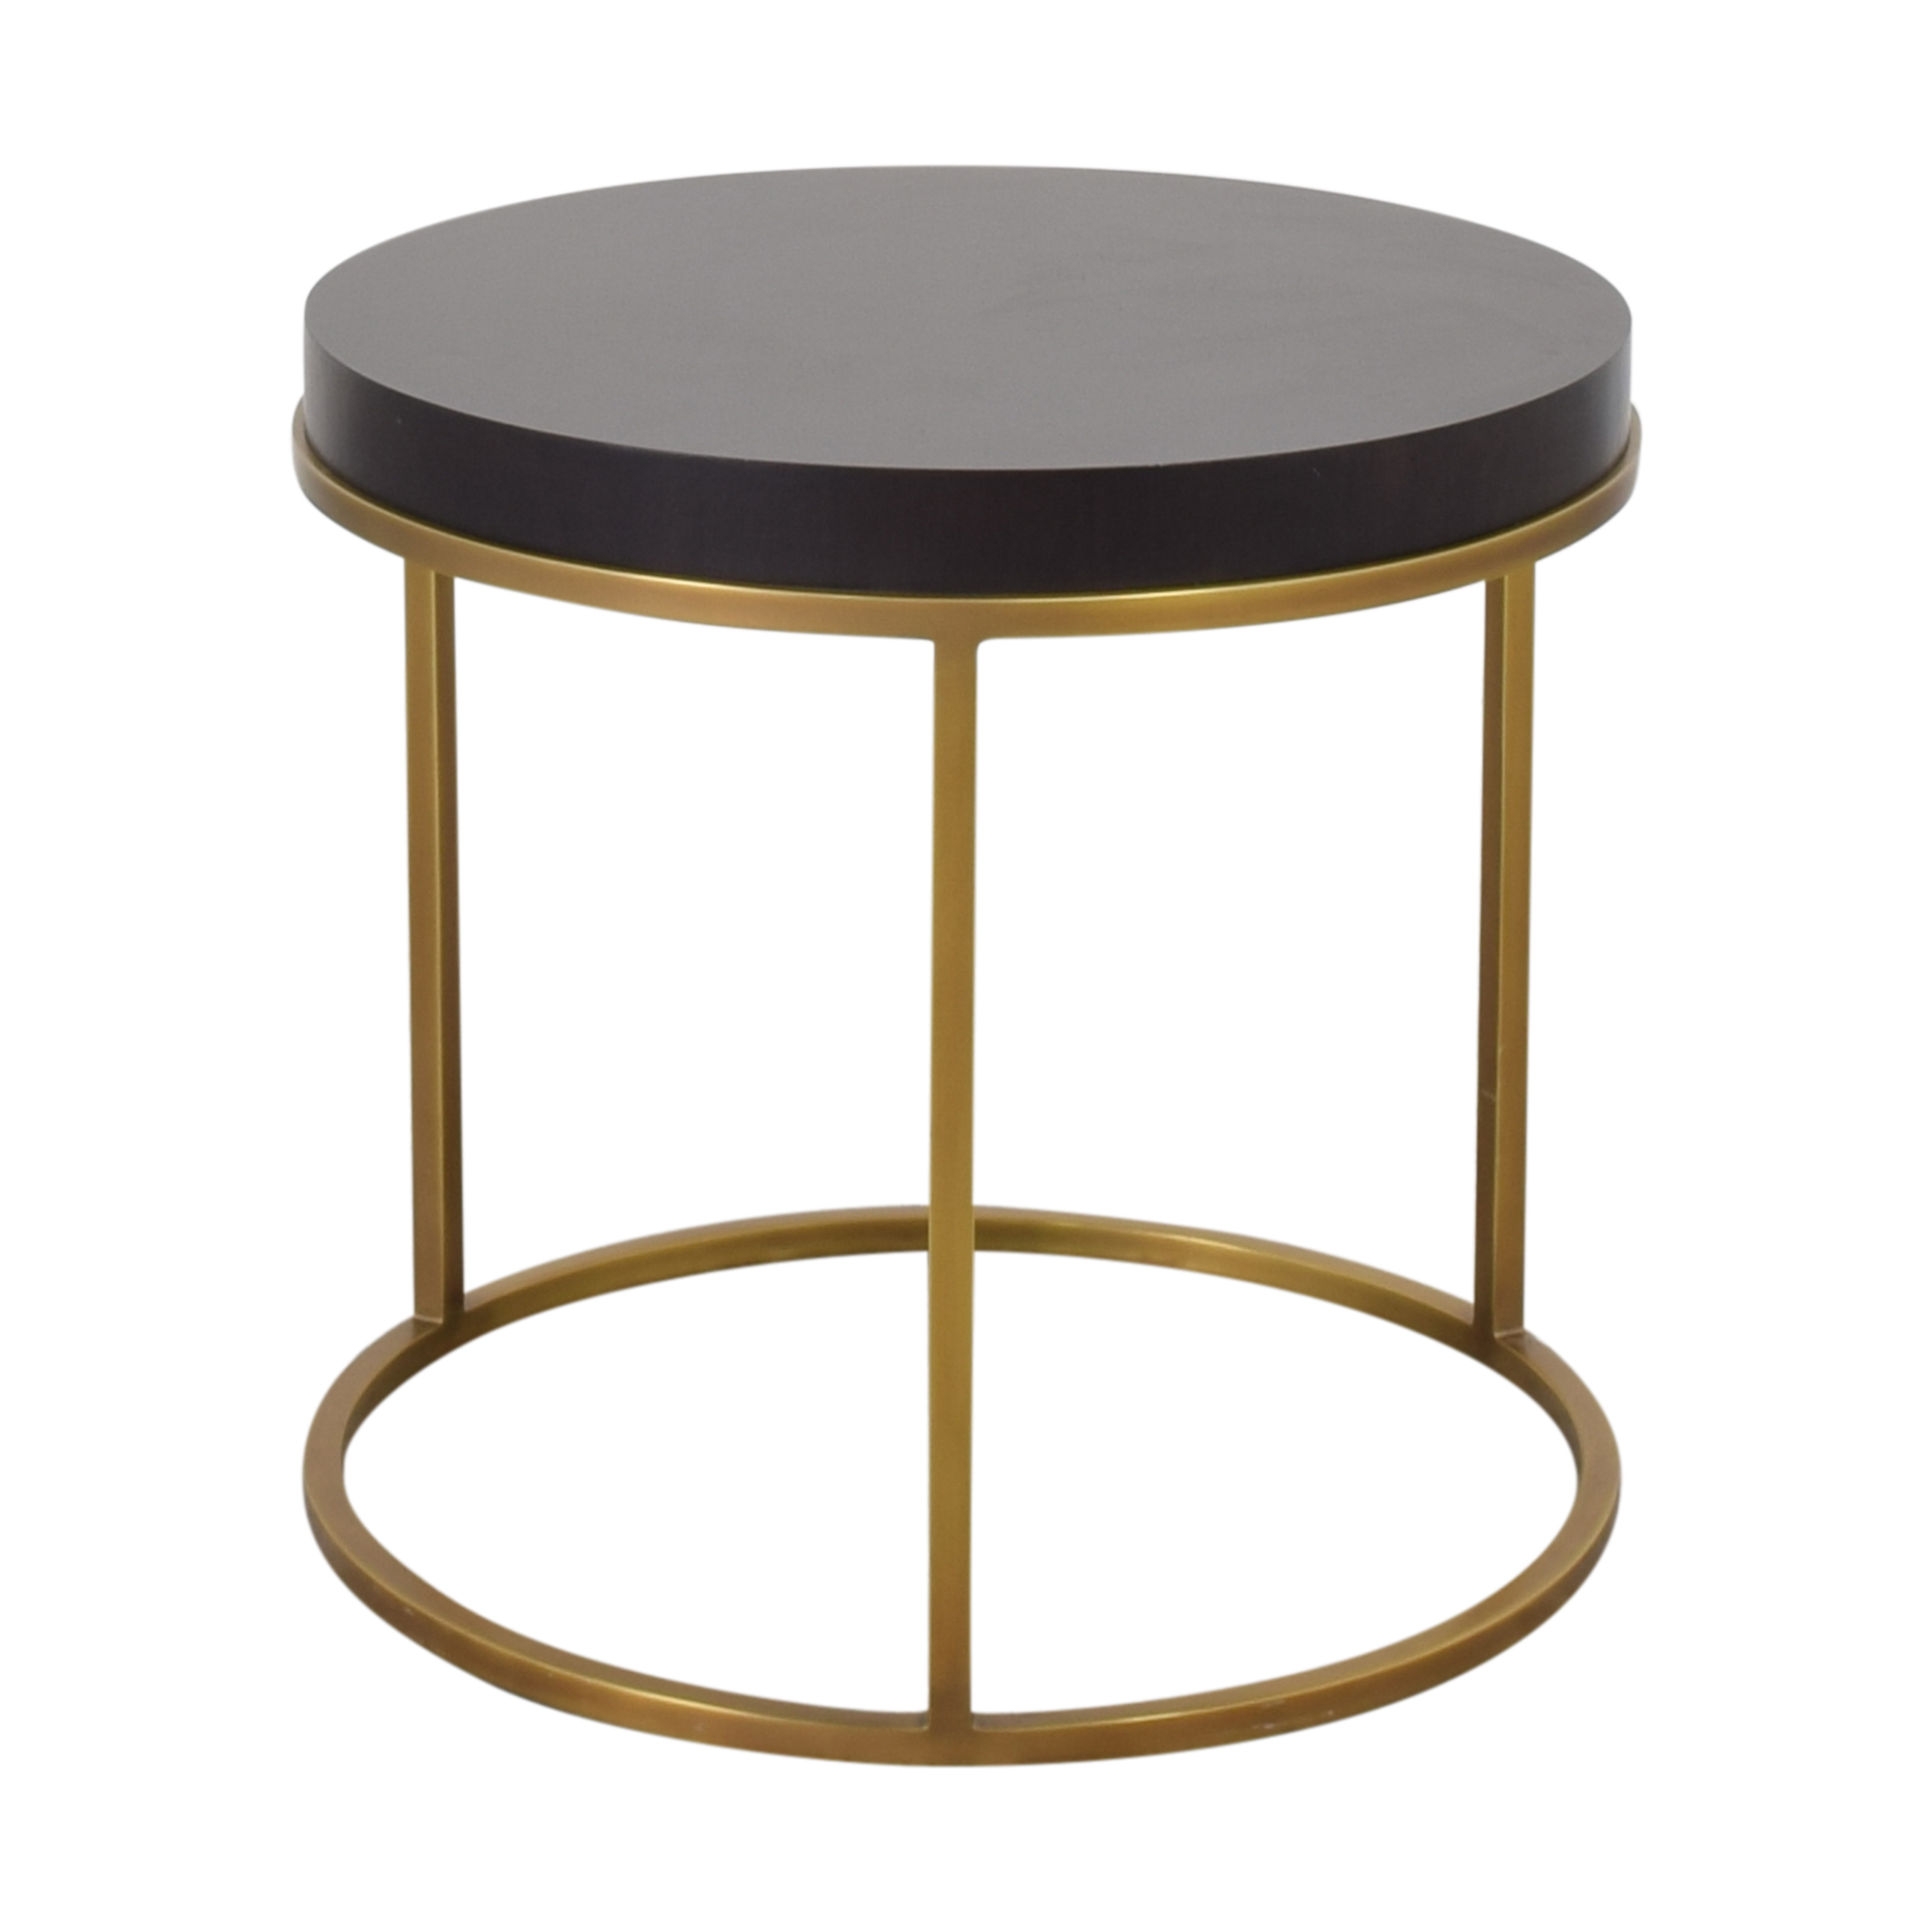 Restoration Hardware Restoration Hardware Nicholas Round Side Table nyc